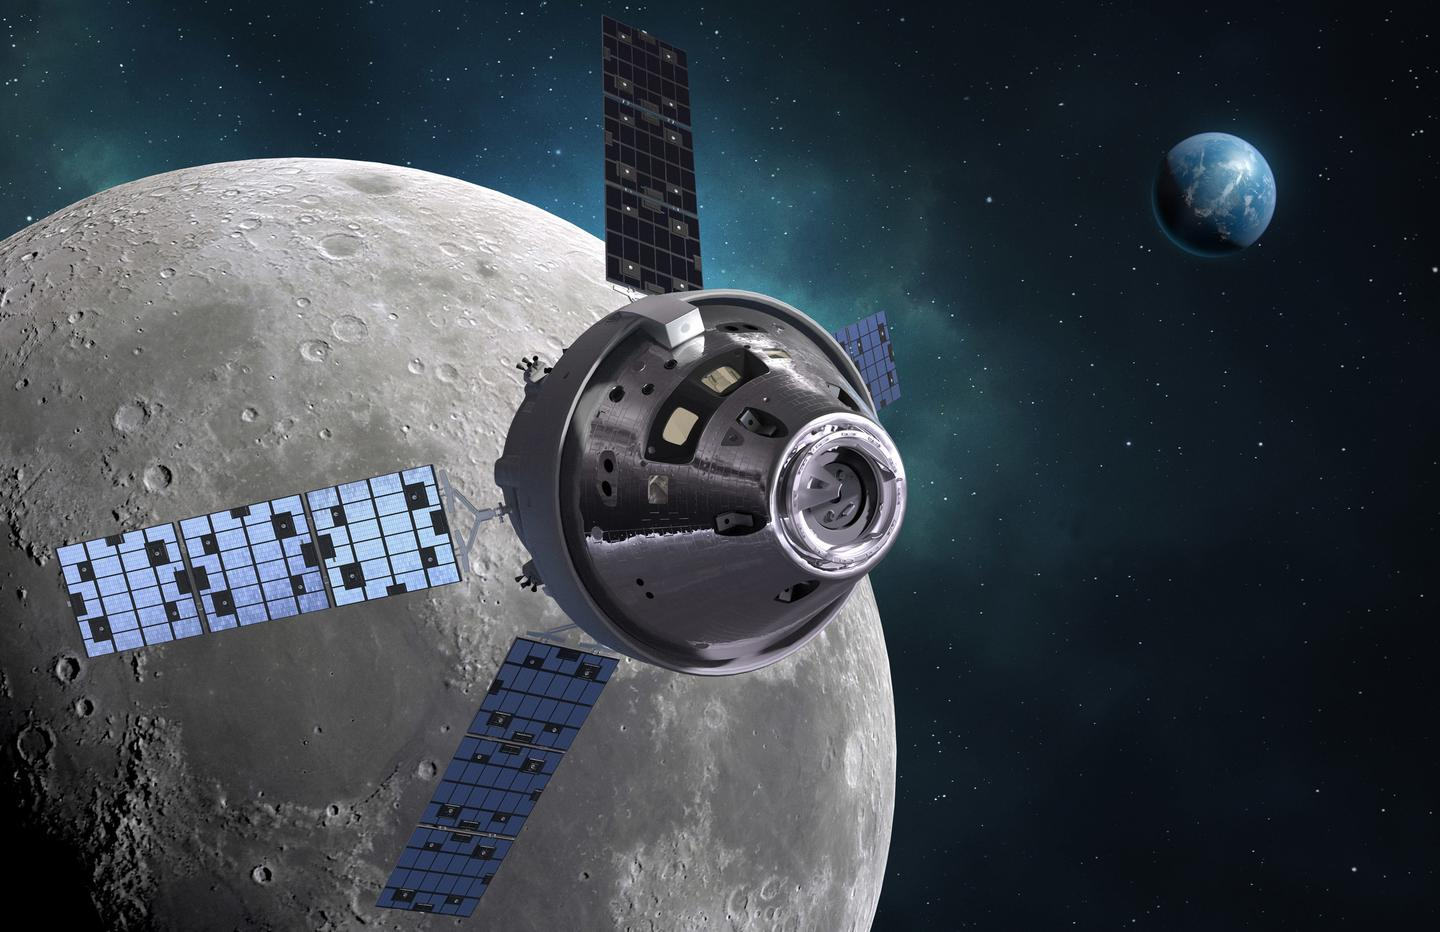 Orion is NASA's deep space exploration spaceship